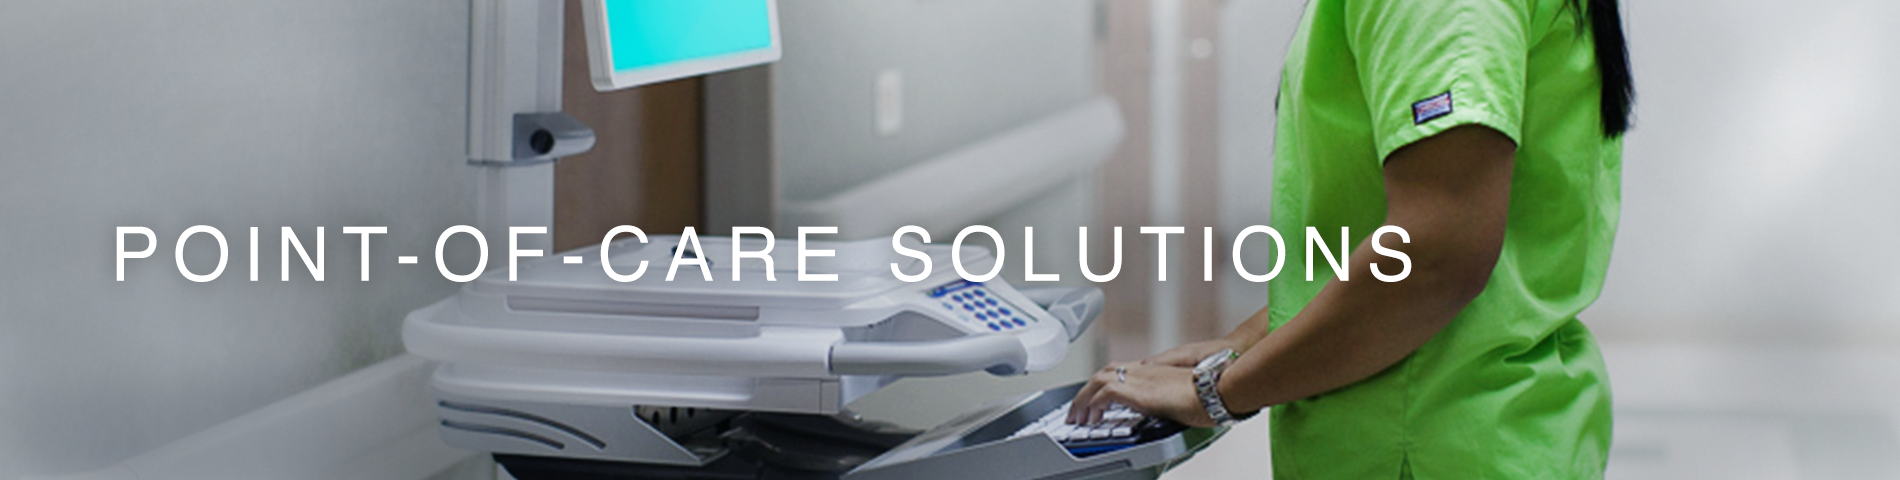 Point-of-Care Solutions & Technology